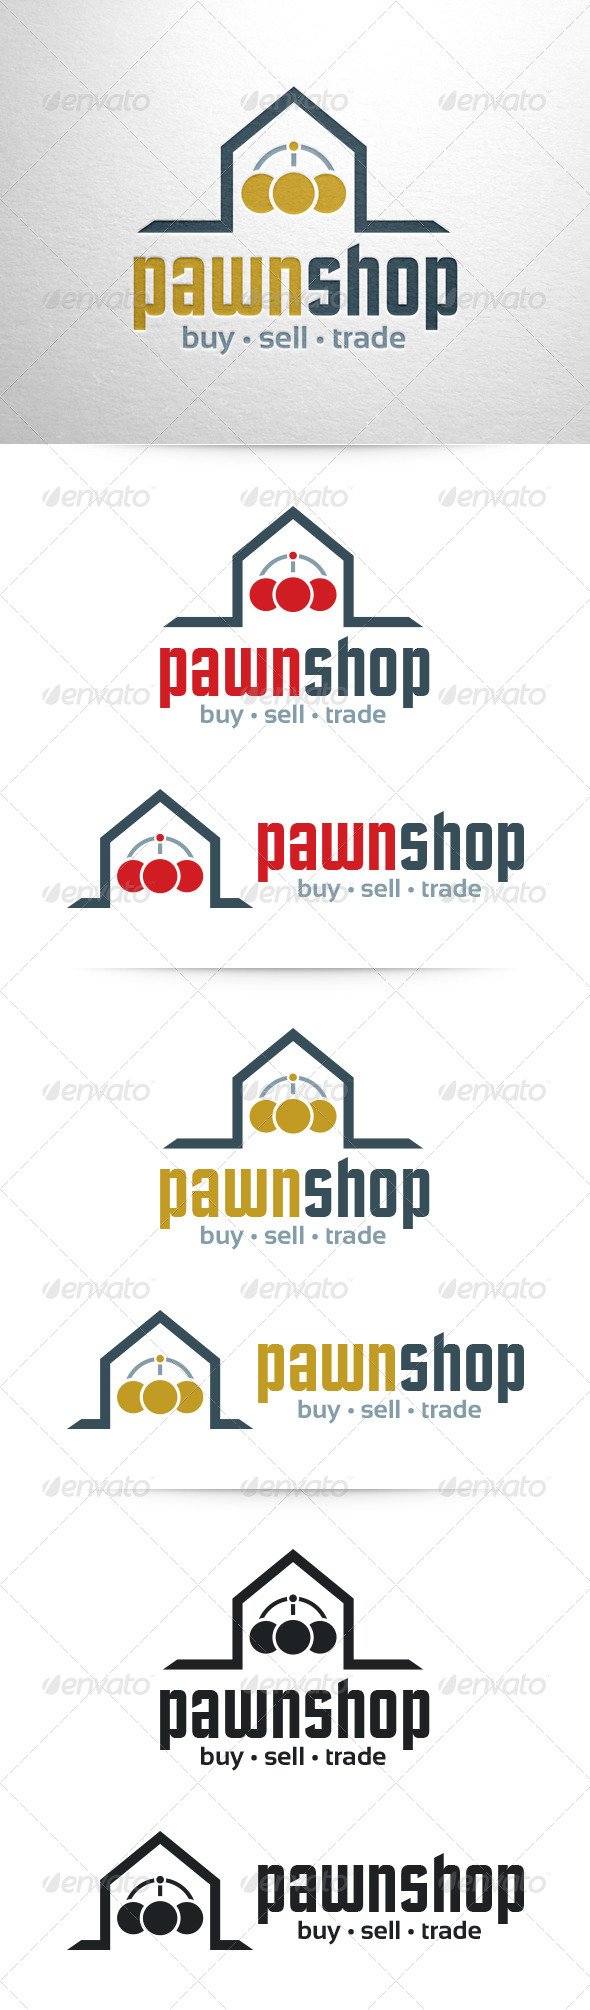 GraphicRiver Pawn Shop Logo Template 6894112